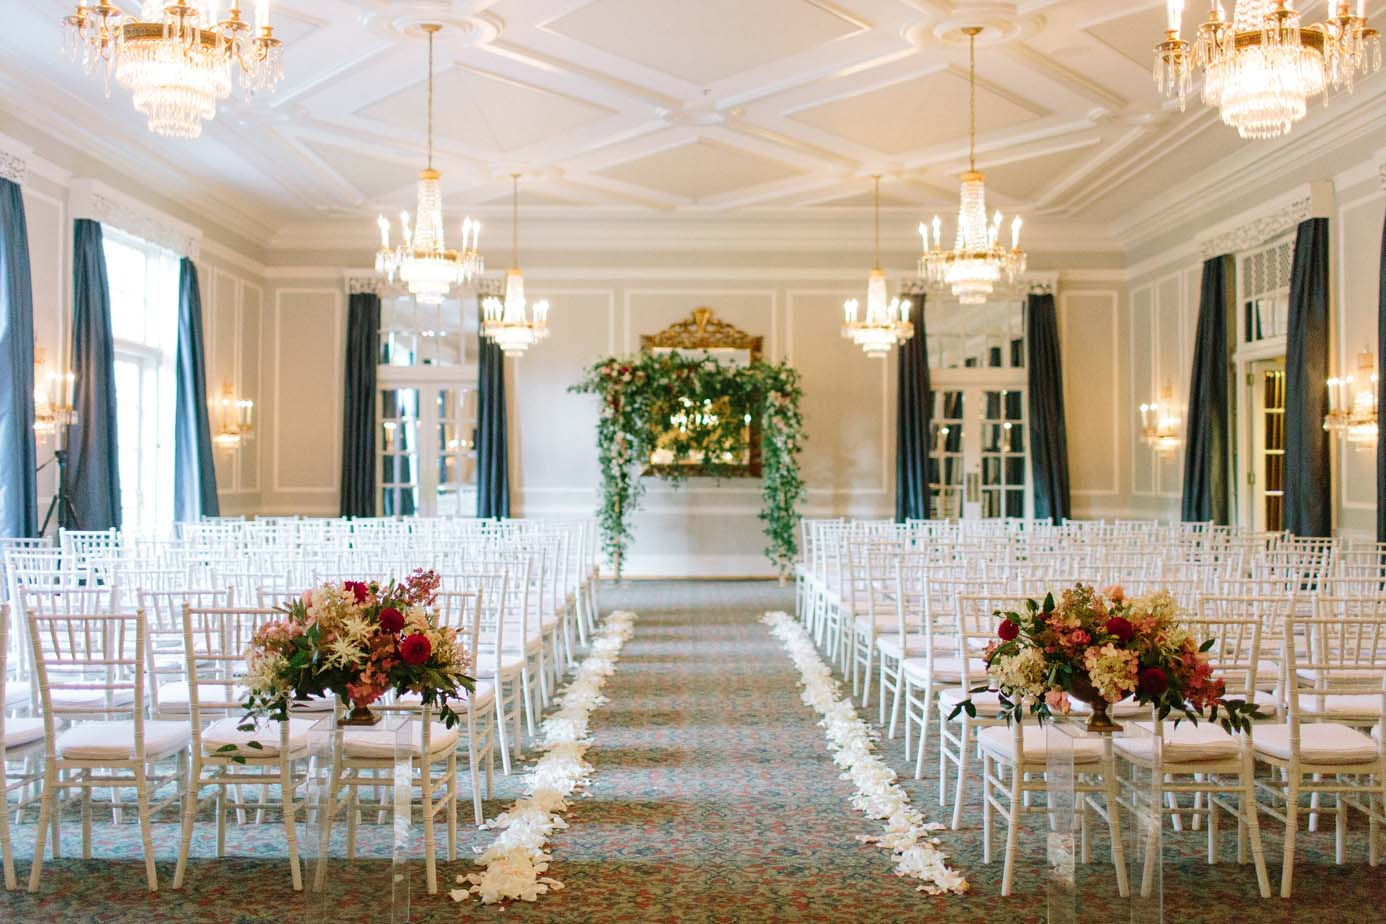 floral design at the Waverley Country Club wedding ceremony